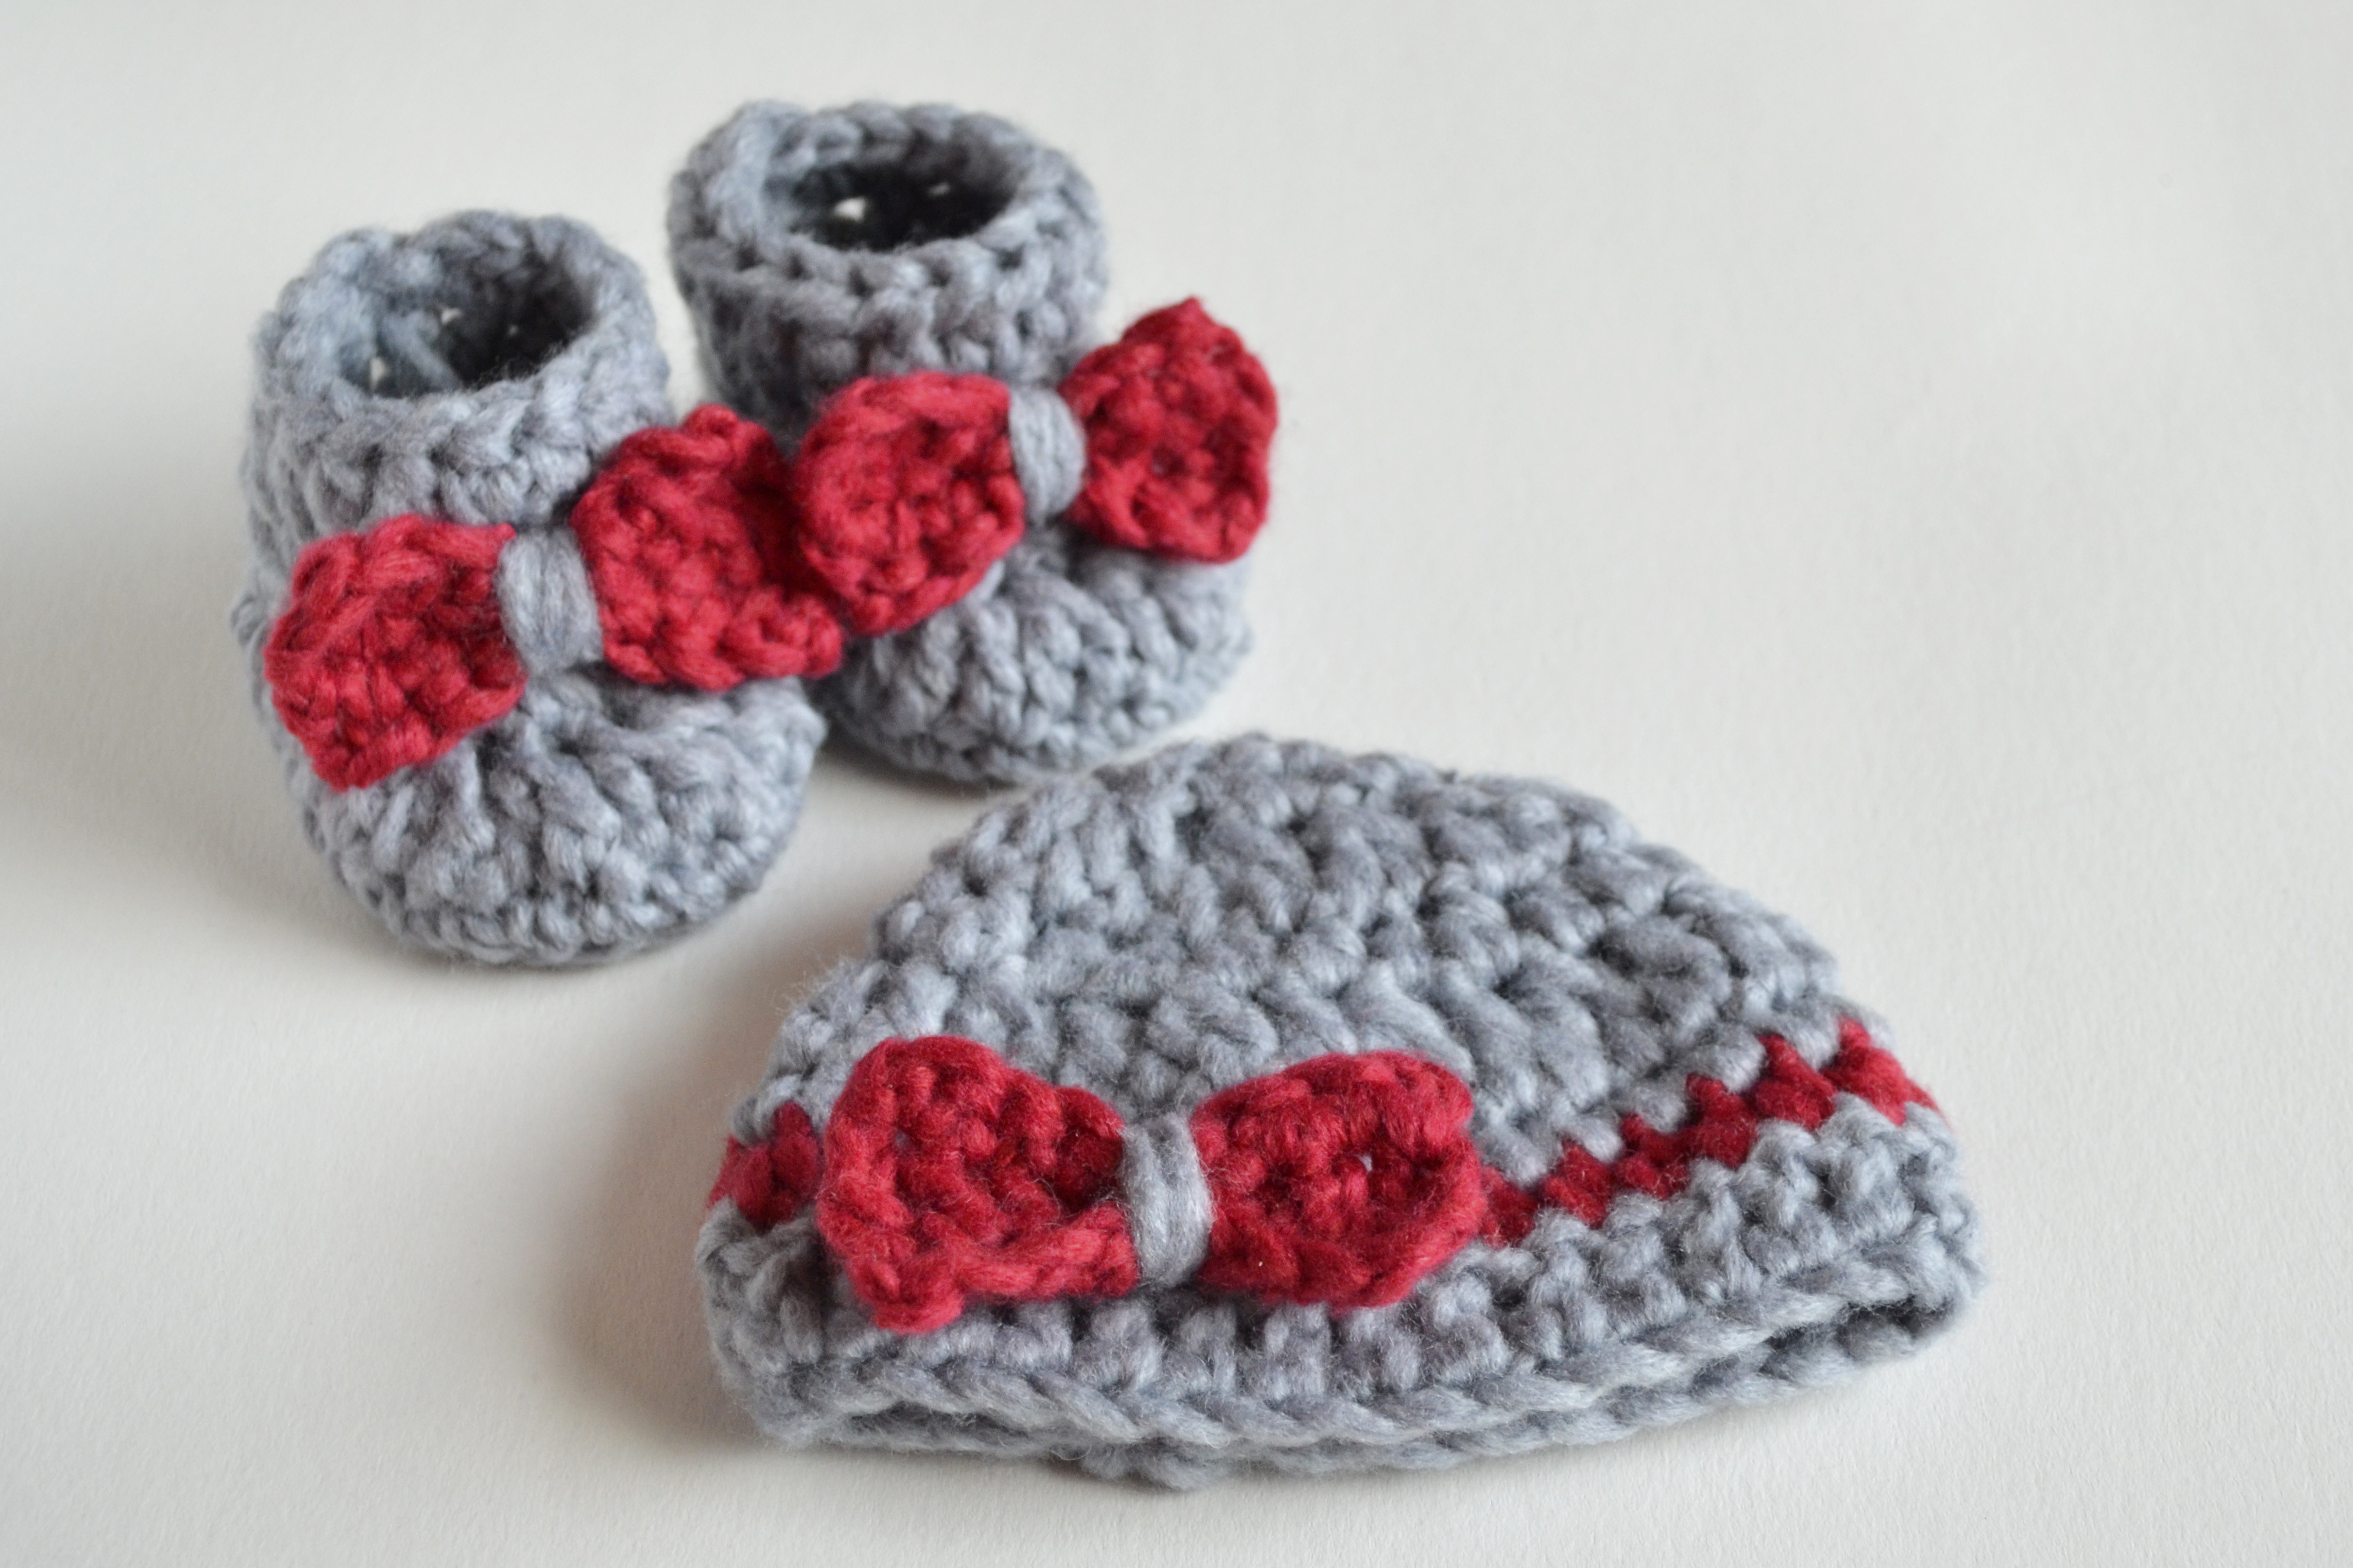 Baby Beanie Crochet Pattern New so Fluffy – Crochet Baby Booties and Beanie Free – Croby Of Amazing 43 Images Baby Beanie Crochet Pattern